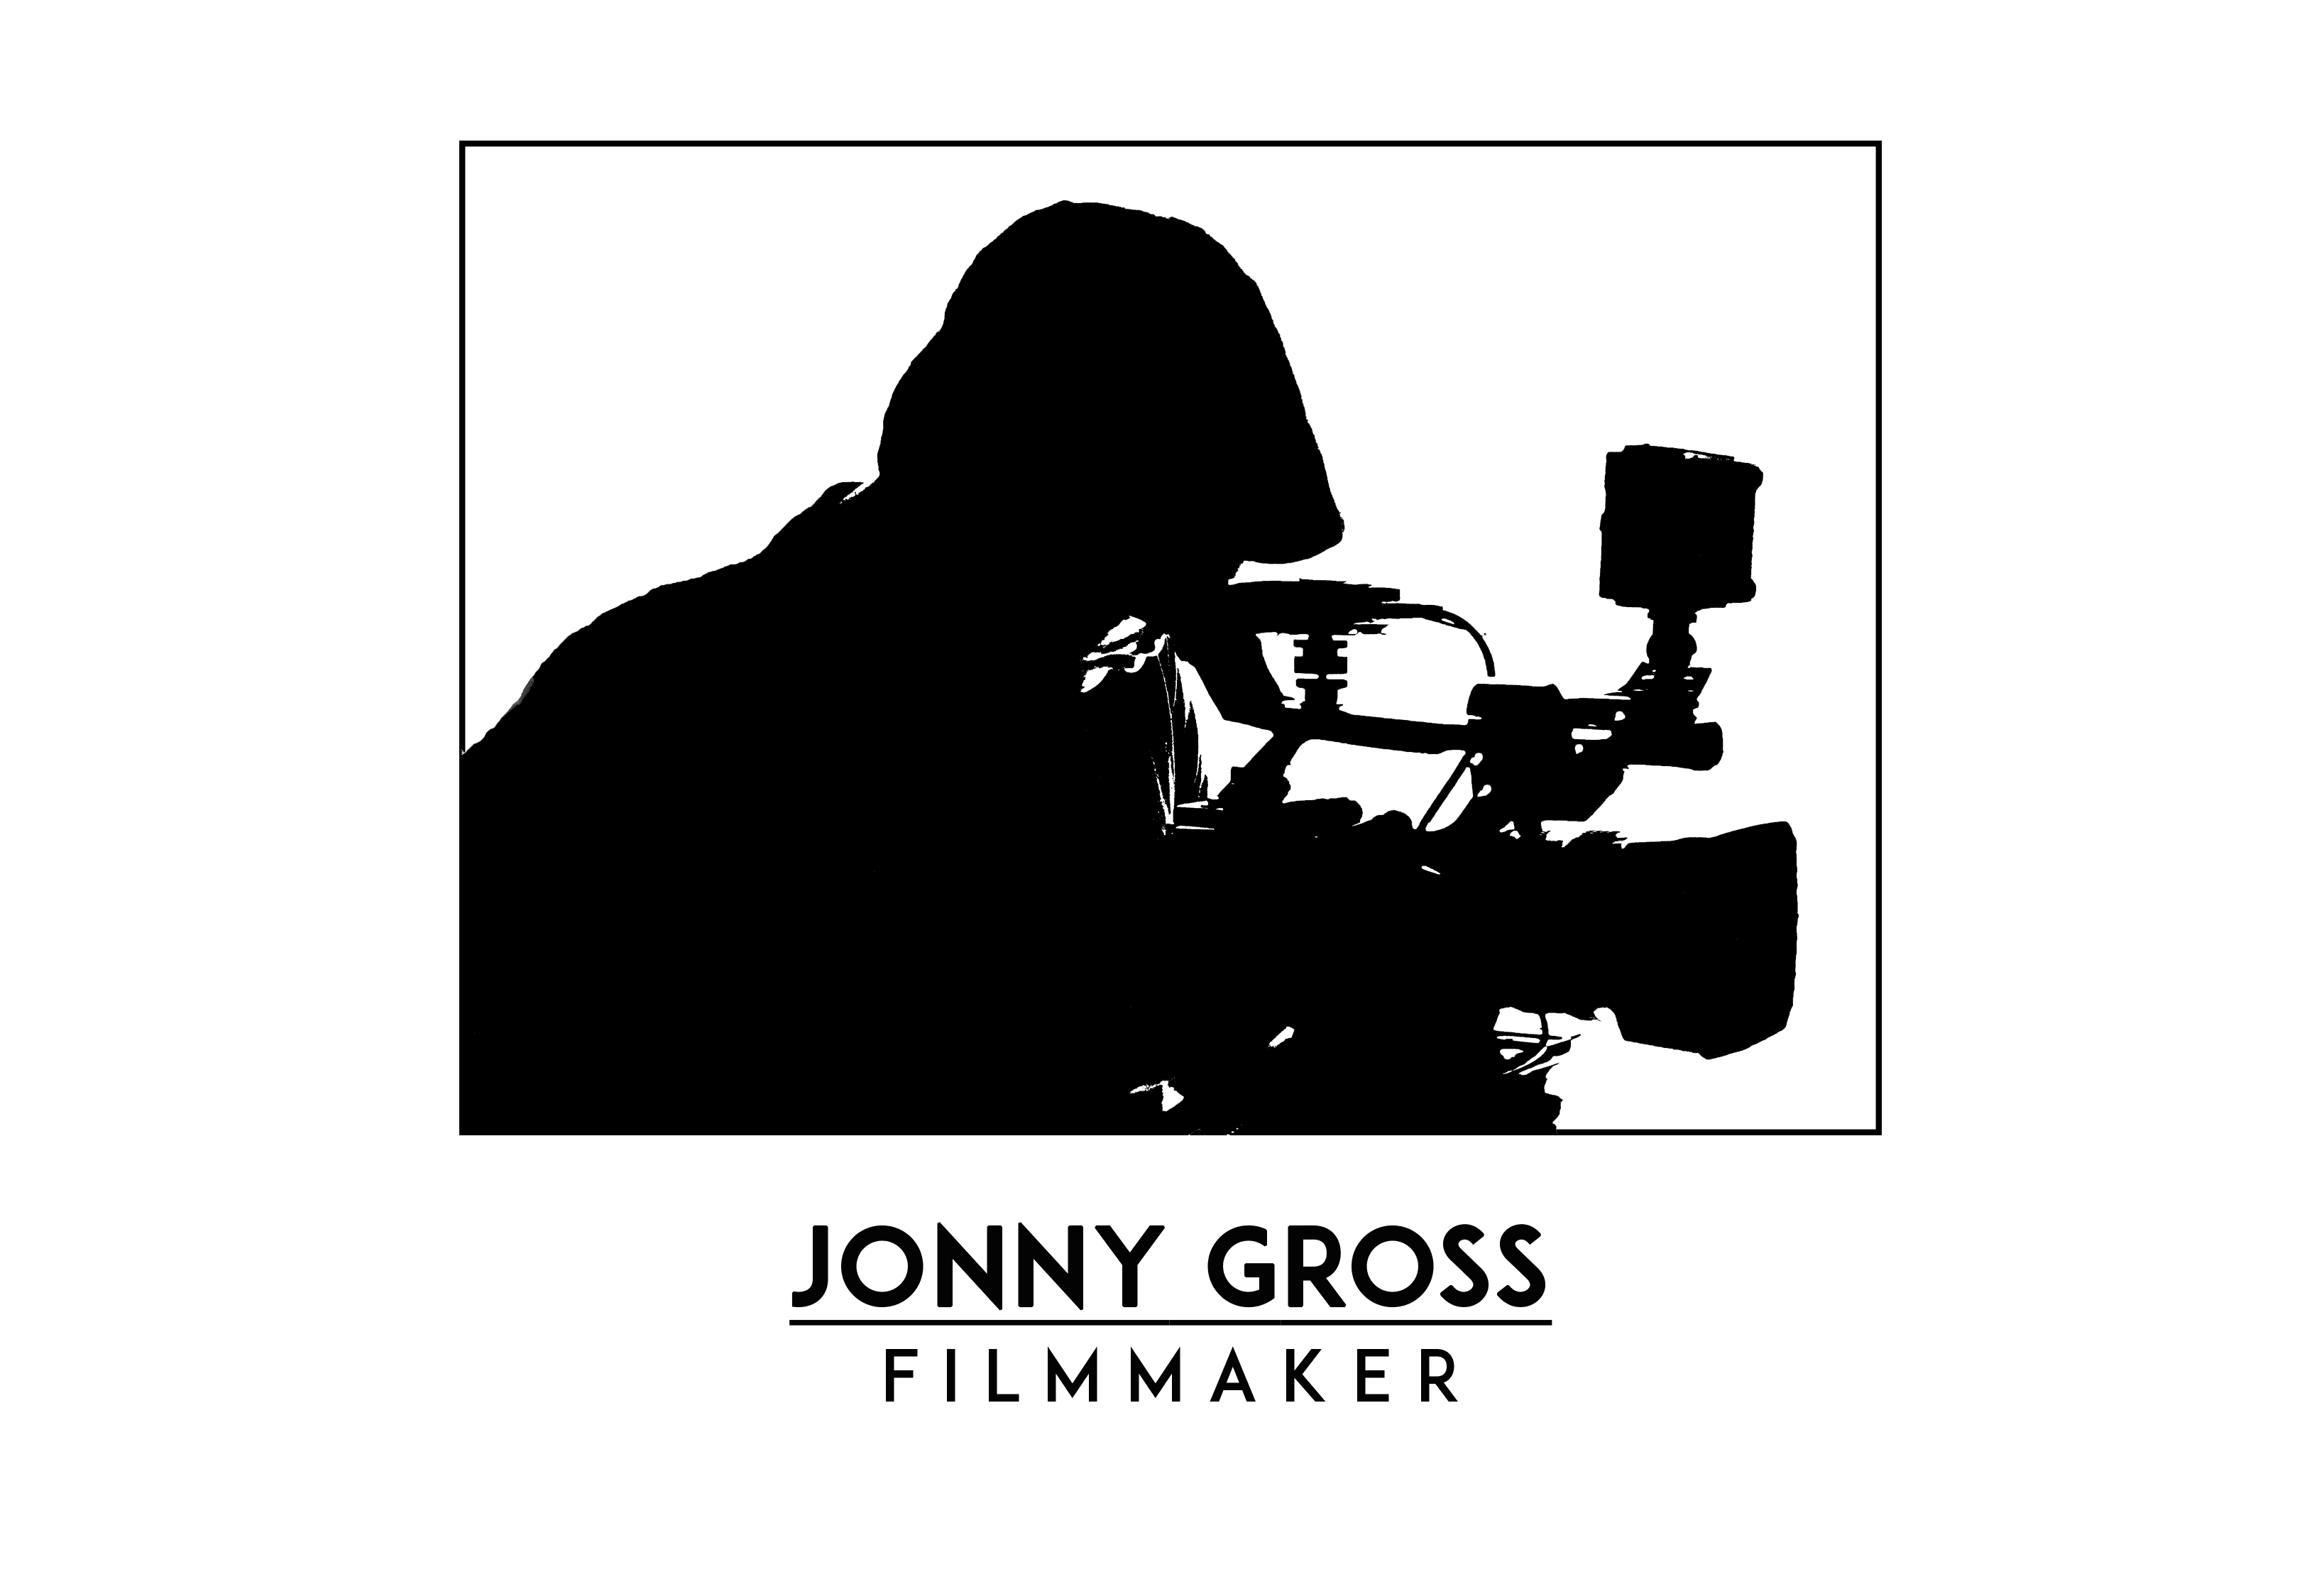 Jonny Gross